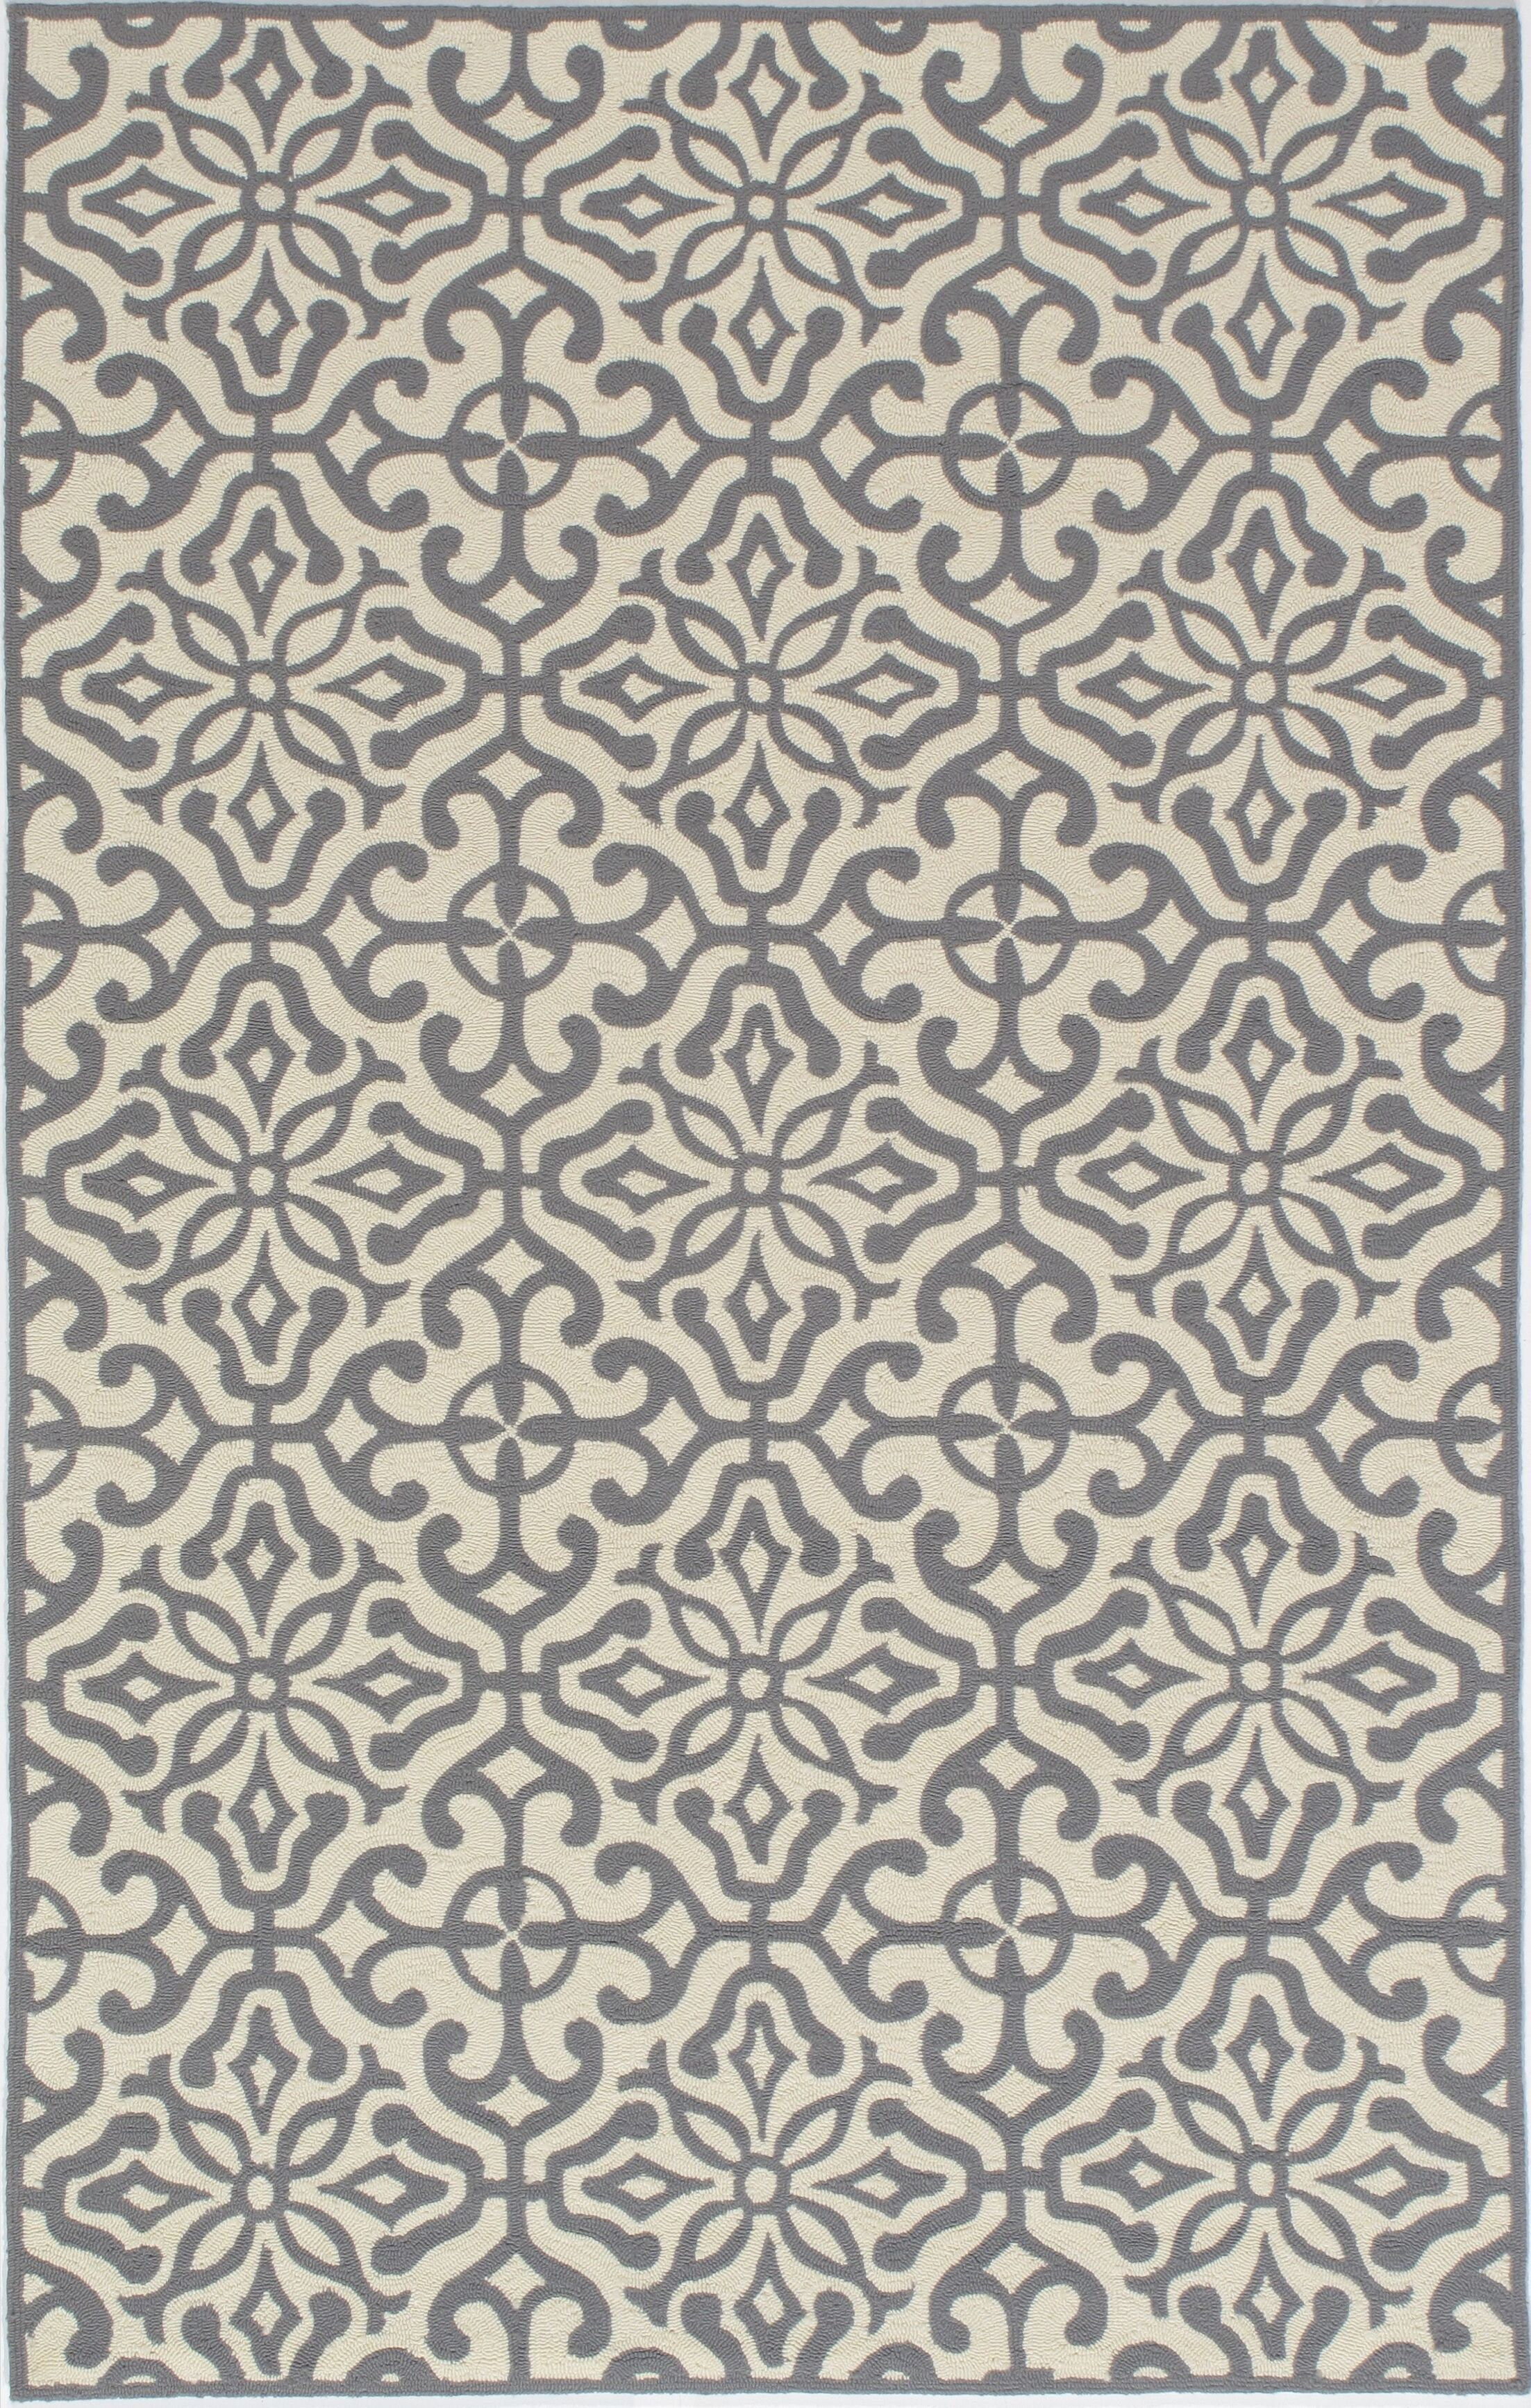 St James Hand-Hooked Gray/Beige Outdoor Area Rug Rug Size: Round 9'